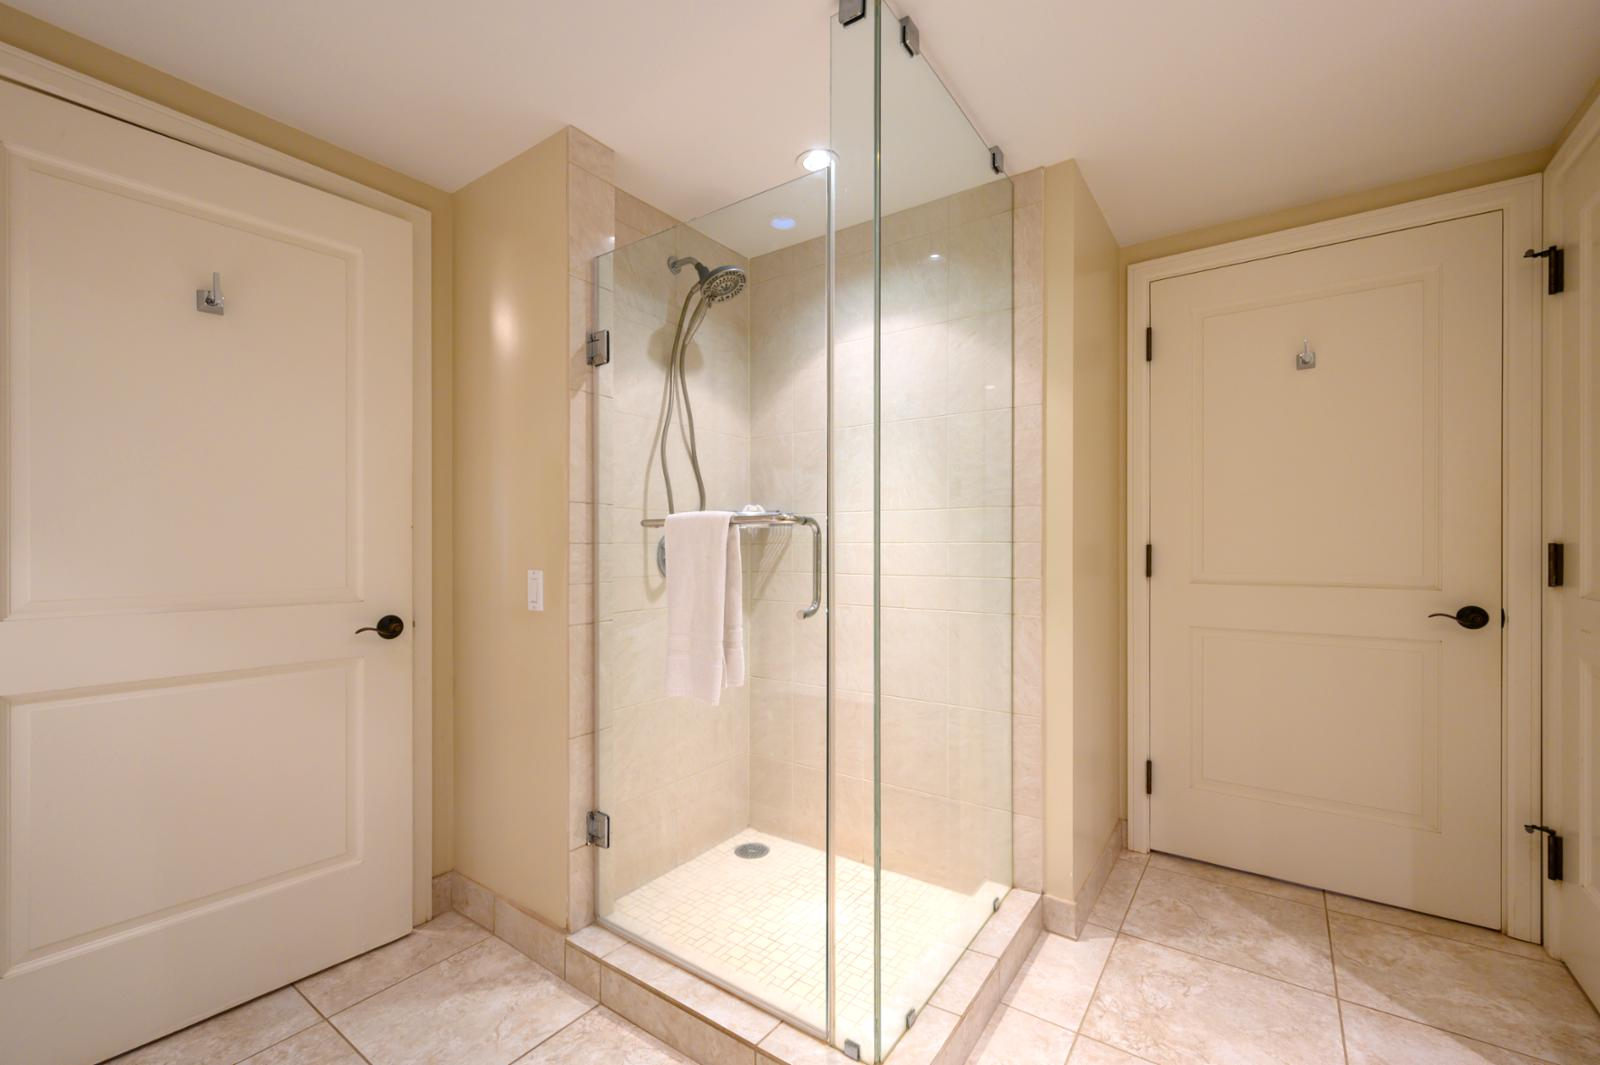 Floor to ceiling glass shower!